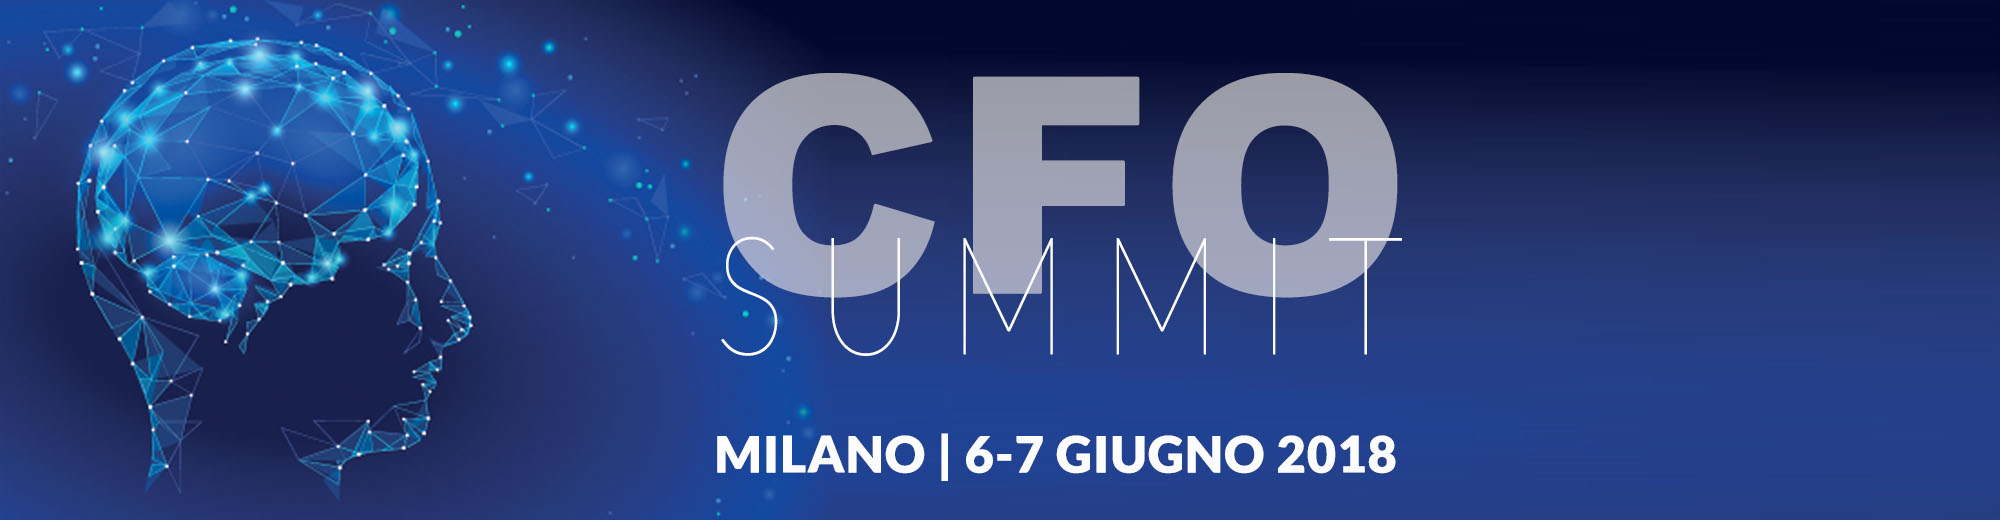 CFO Summit 2018